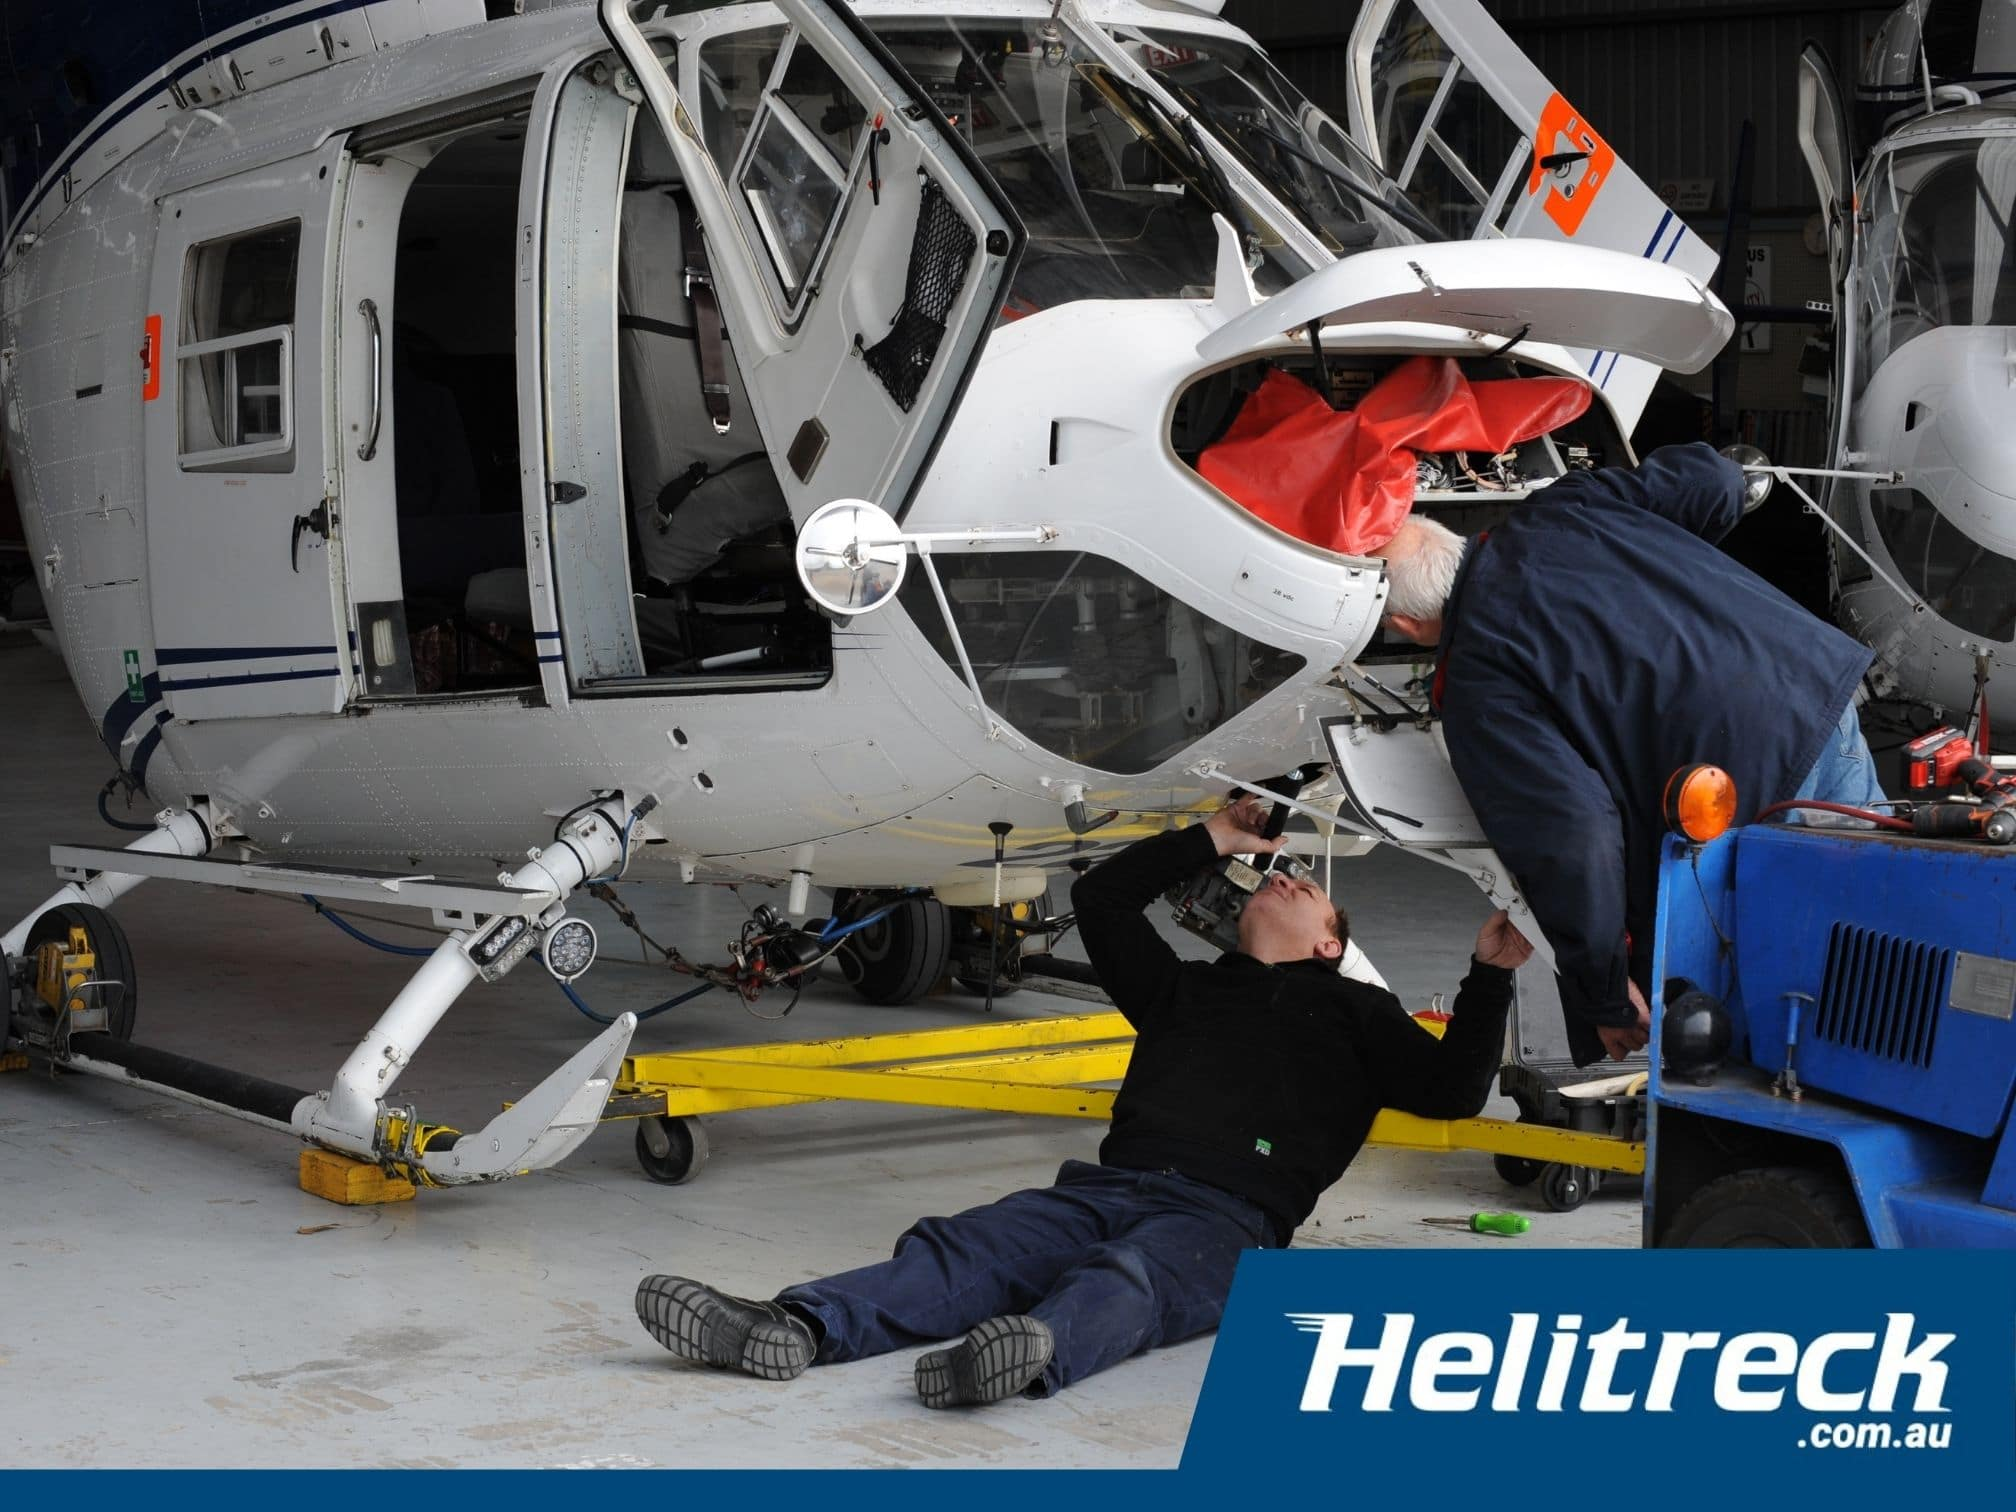 Helicopter-Maintenance-Helicopter-Engineering3